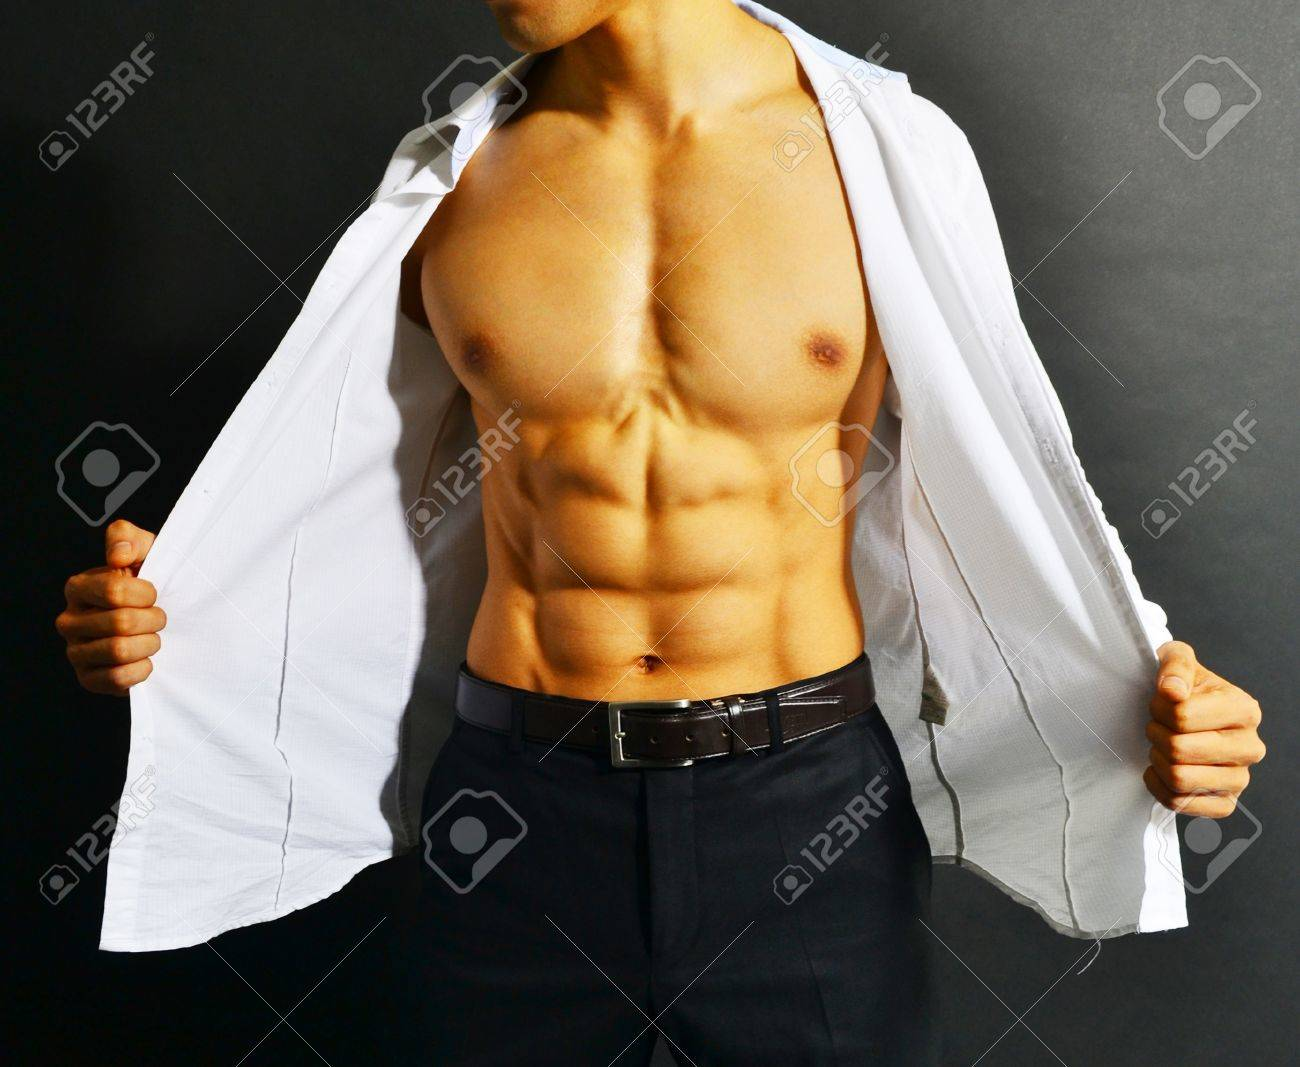 Muscular Torso Stock Photo Picture And Royalty Free Image Image